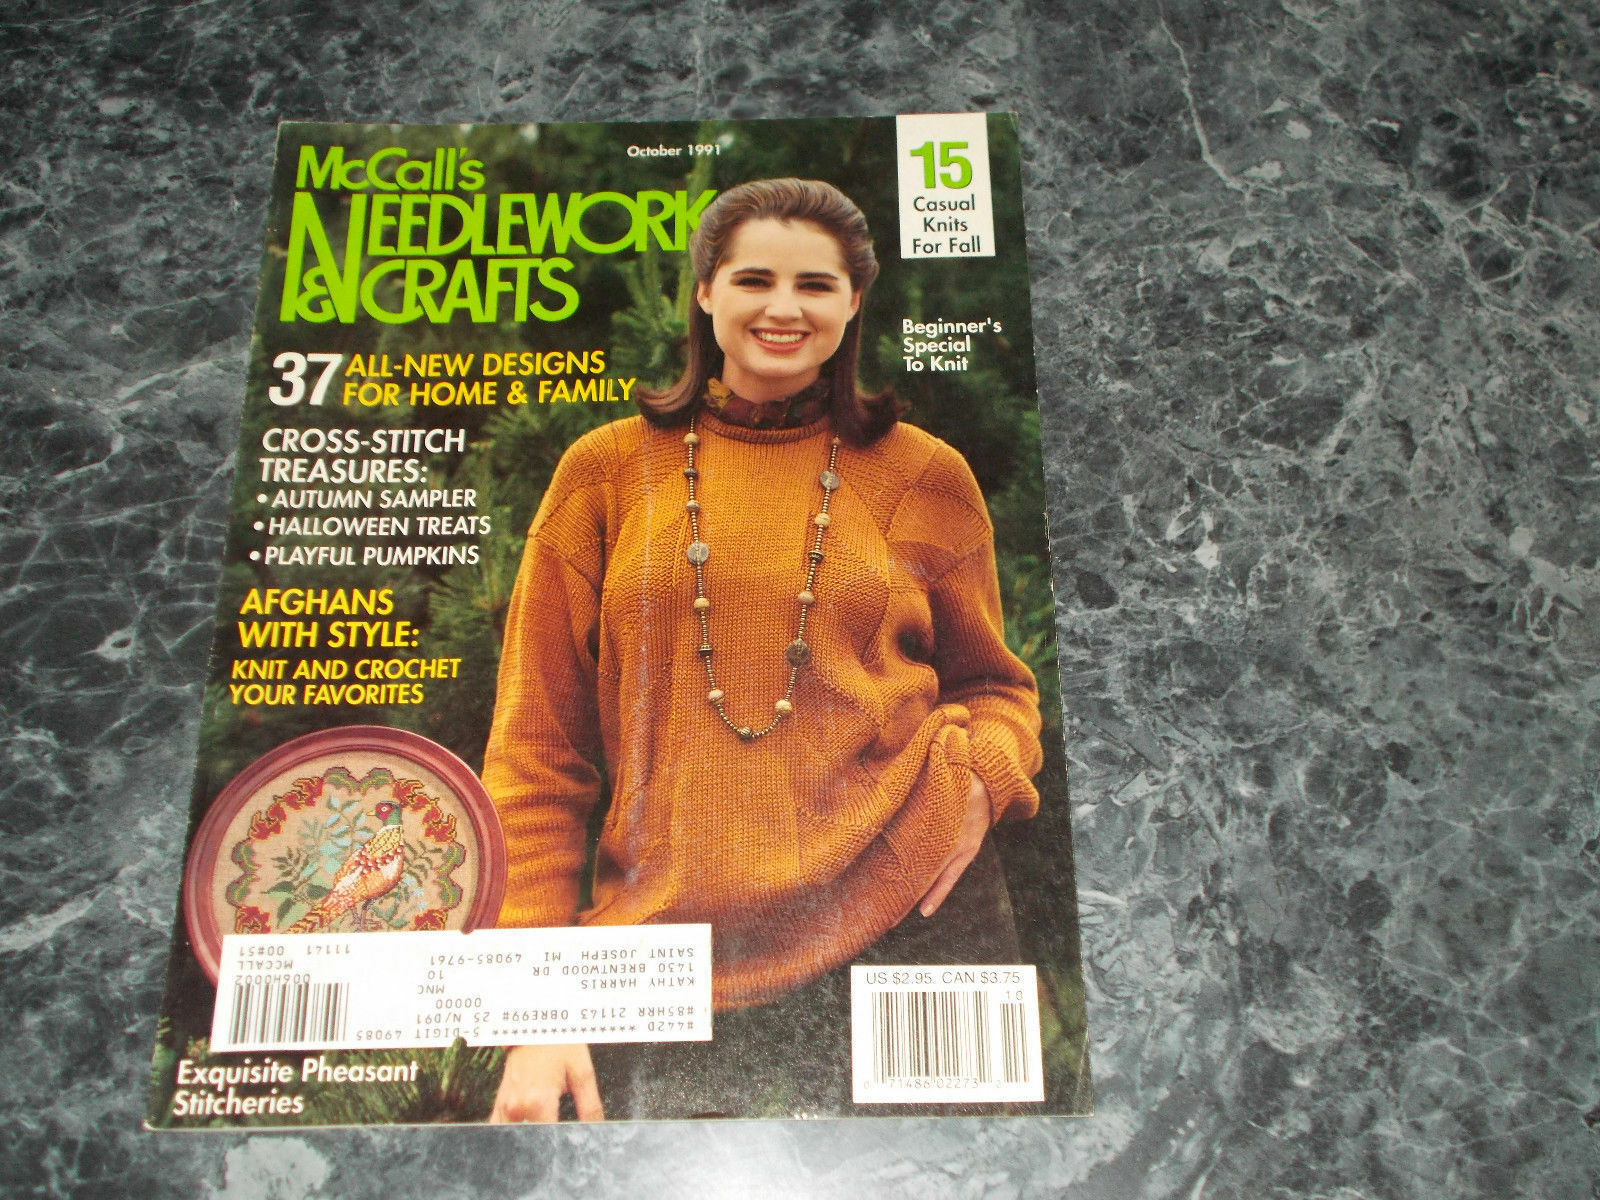 Primary image for Mccall's Needlework & Crafts Magazine October 1991 Autumn Sampler